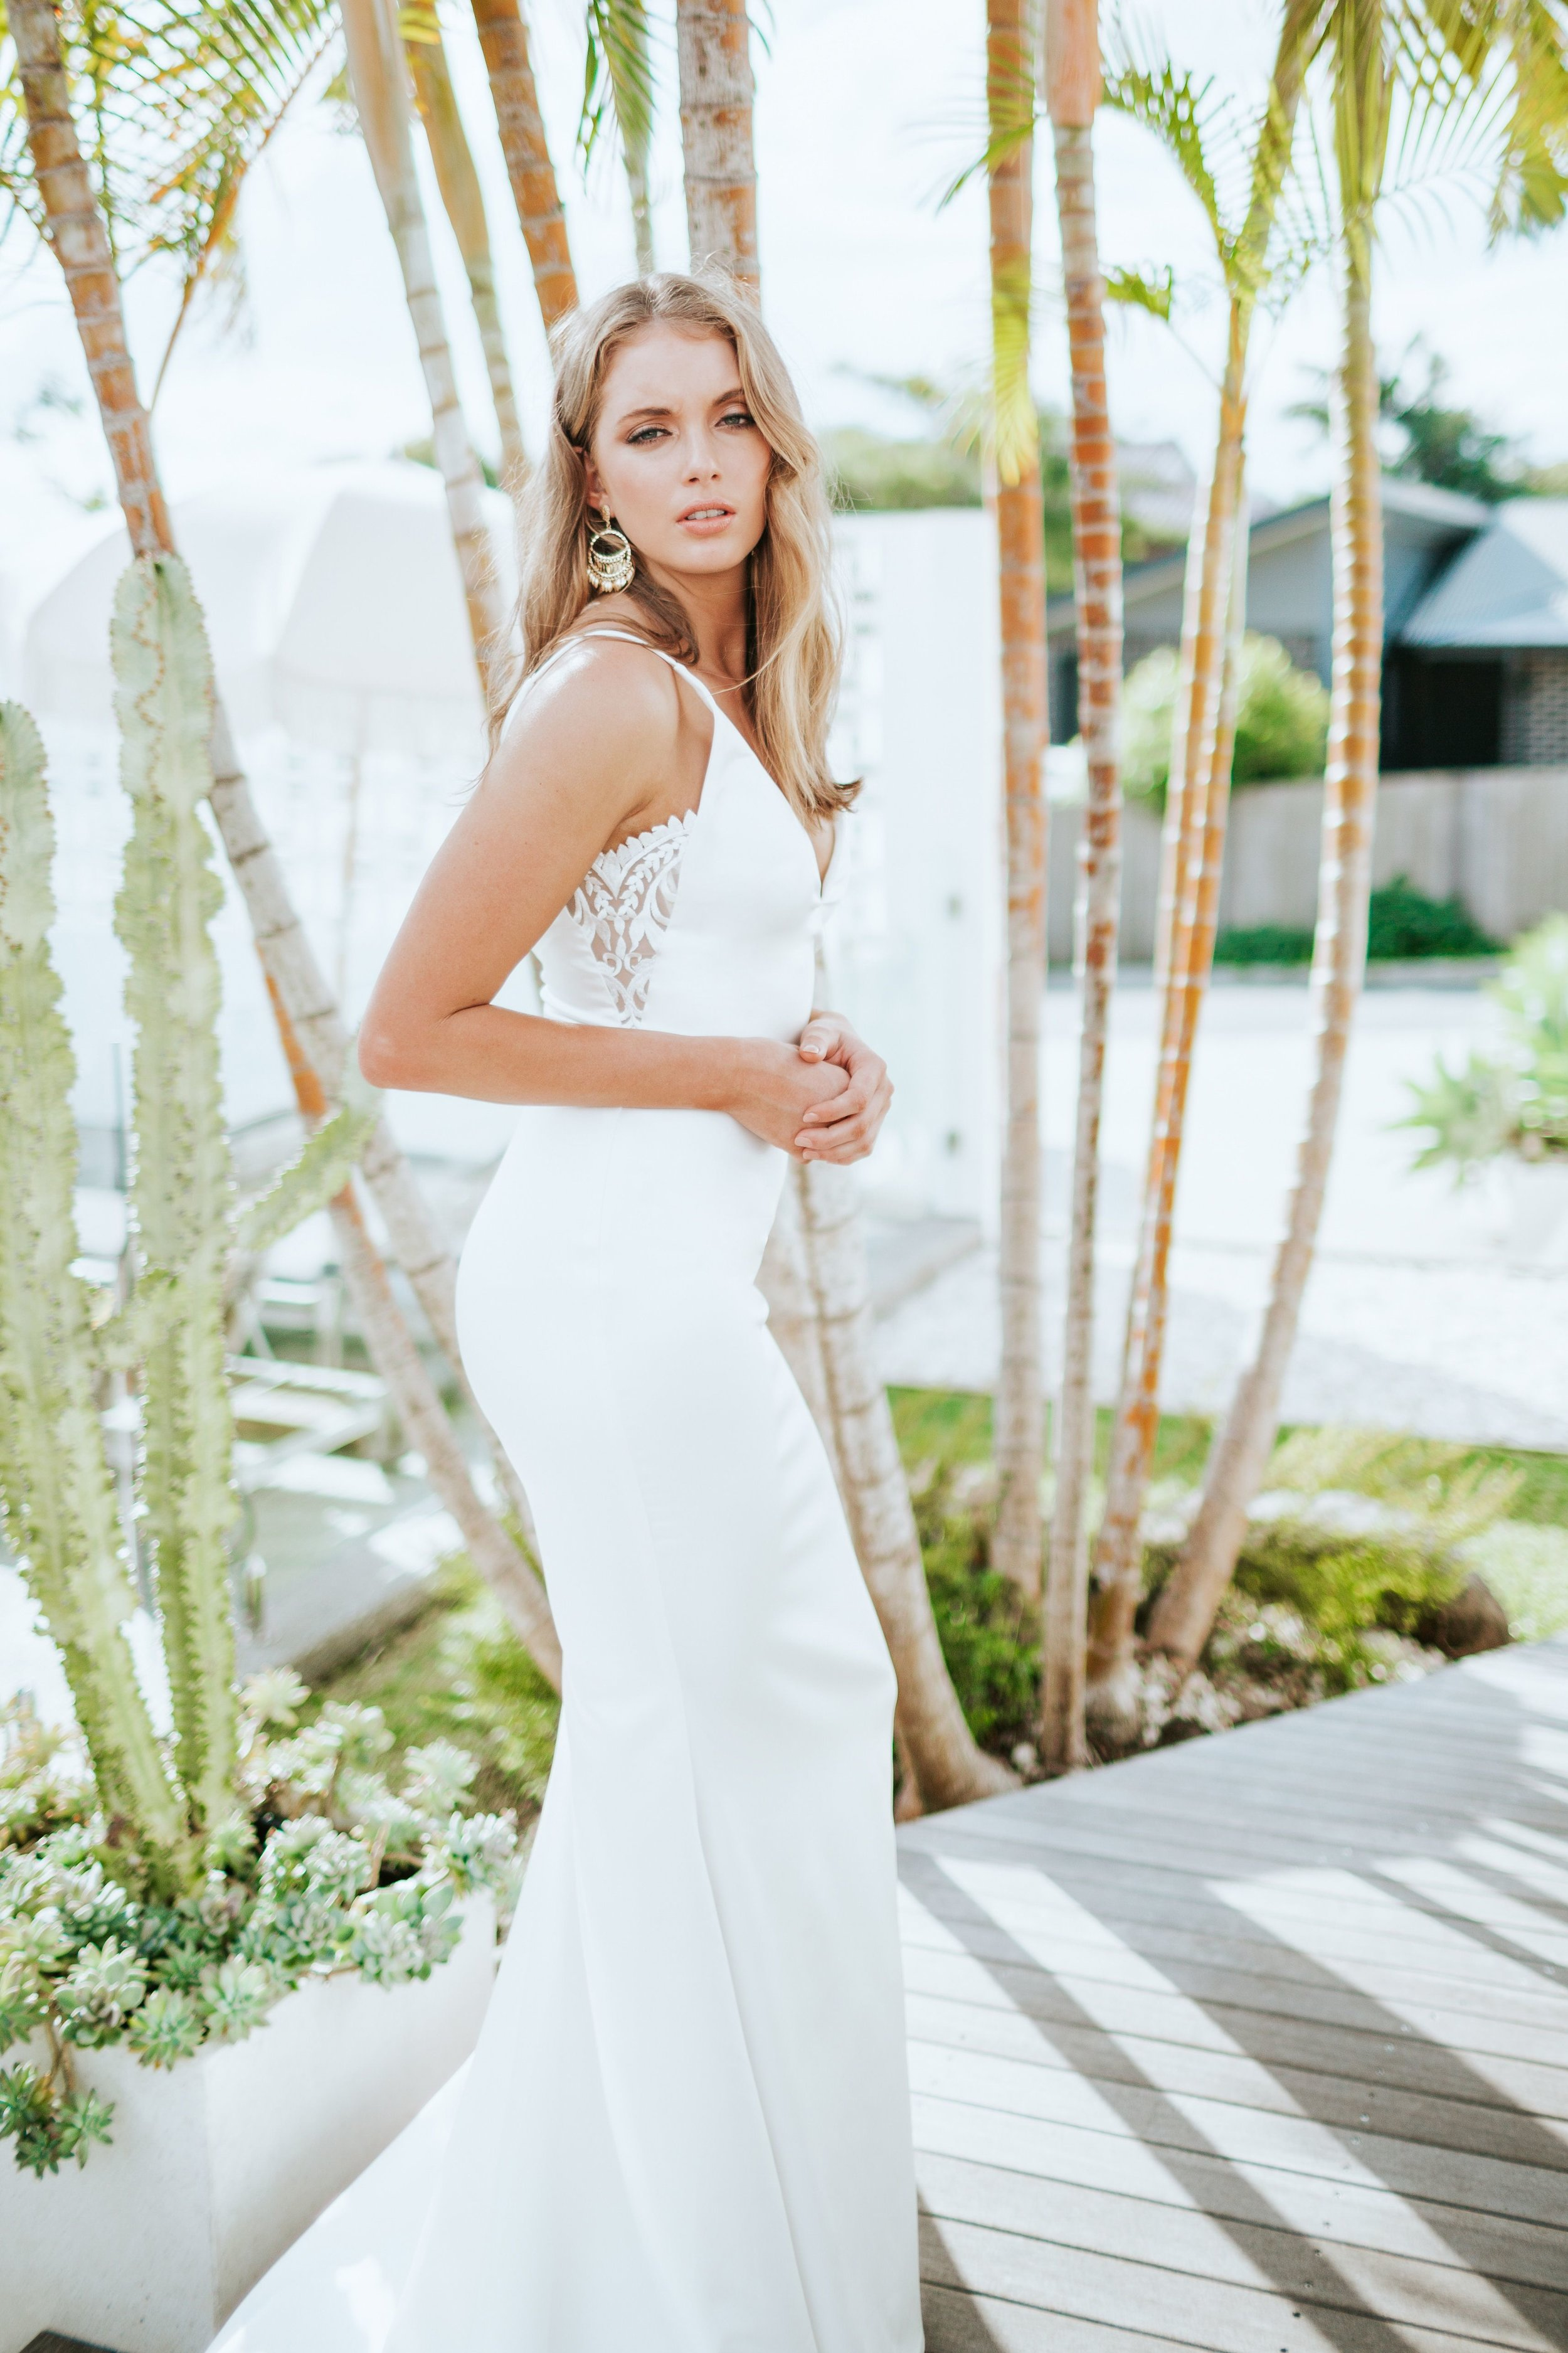 Our NEW YORK gown was designed to highlight the sexy silhouette of a modern, minimalistic bride. Made using a smooth ivory French crepe with silky finish, a v-neckline flatters from the front and lace detail compliments the bodice from the side.